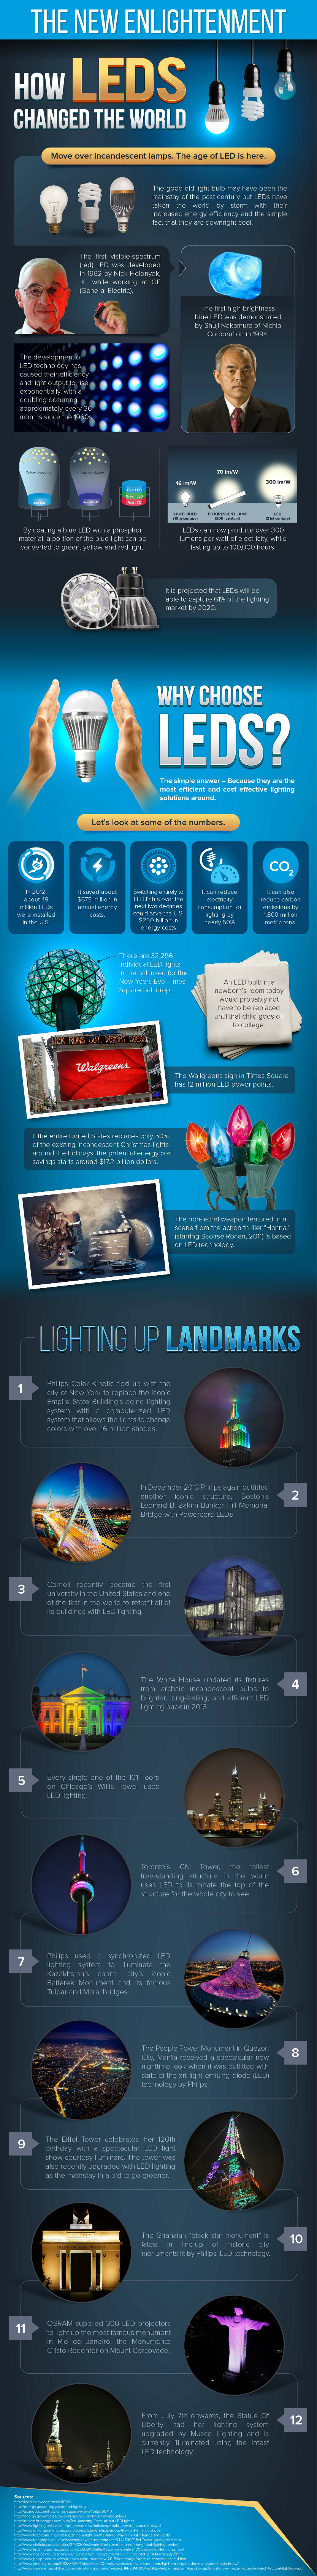 LED-Infographic1-r50